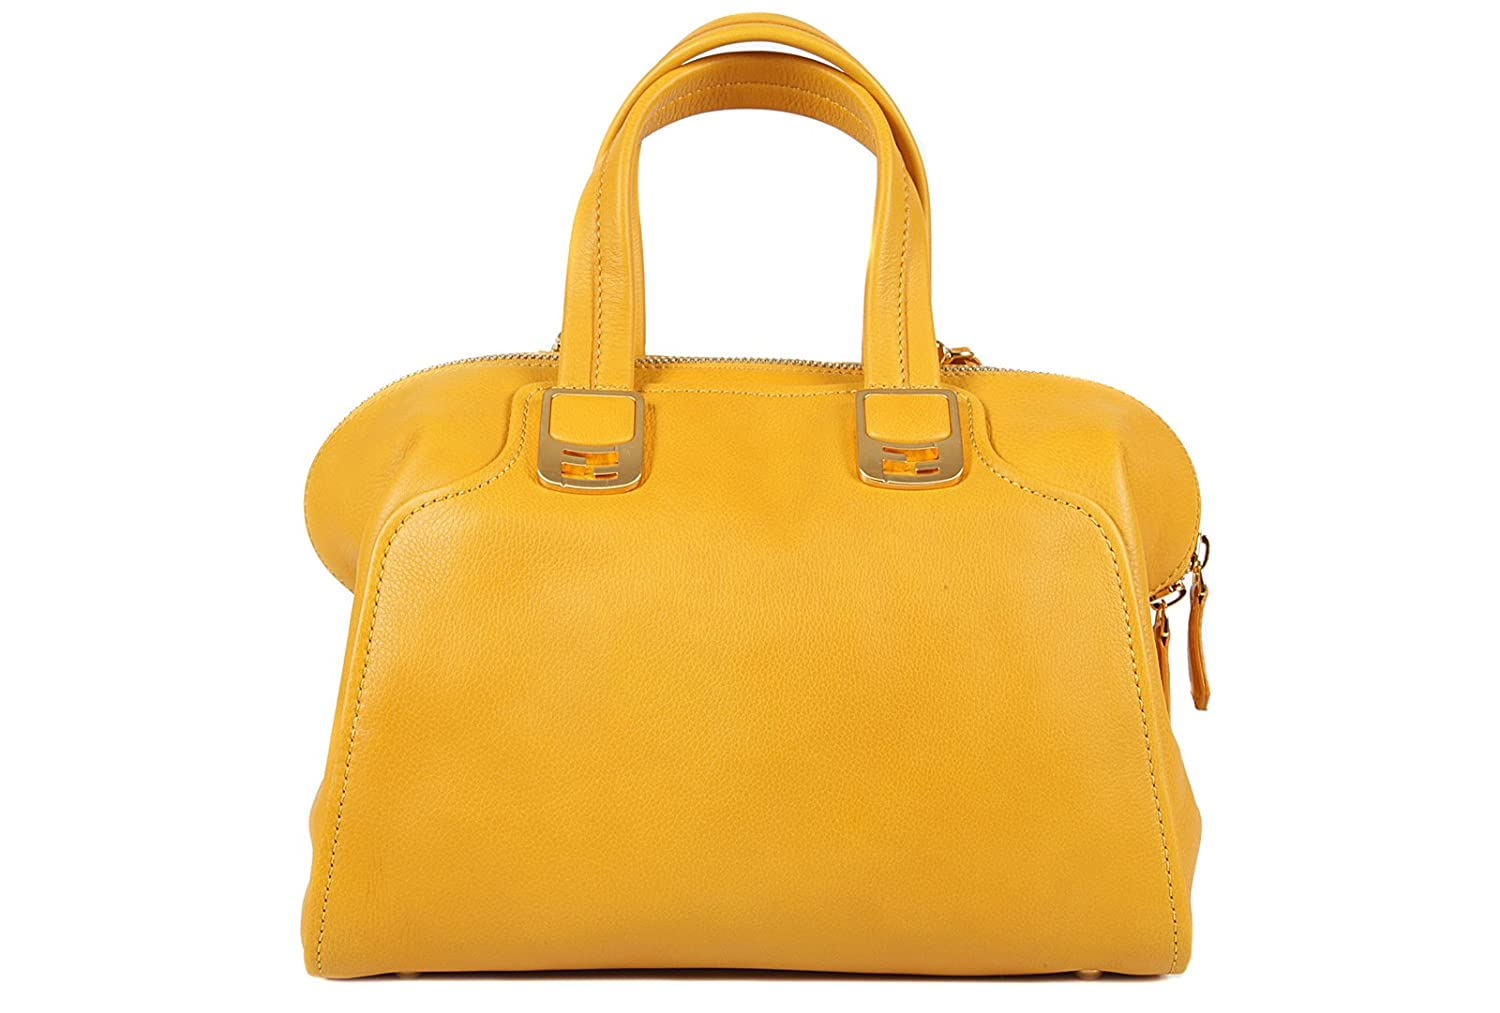 Fendi women's leather handbag shopping bag purse chameleon yellow